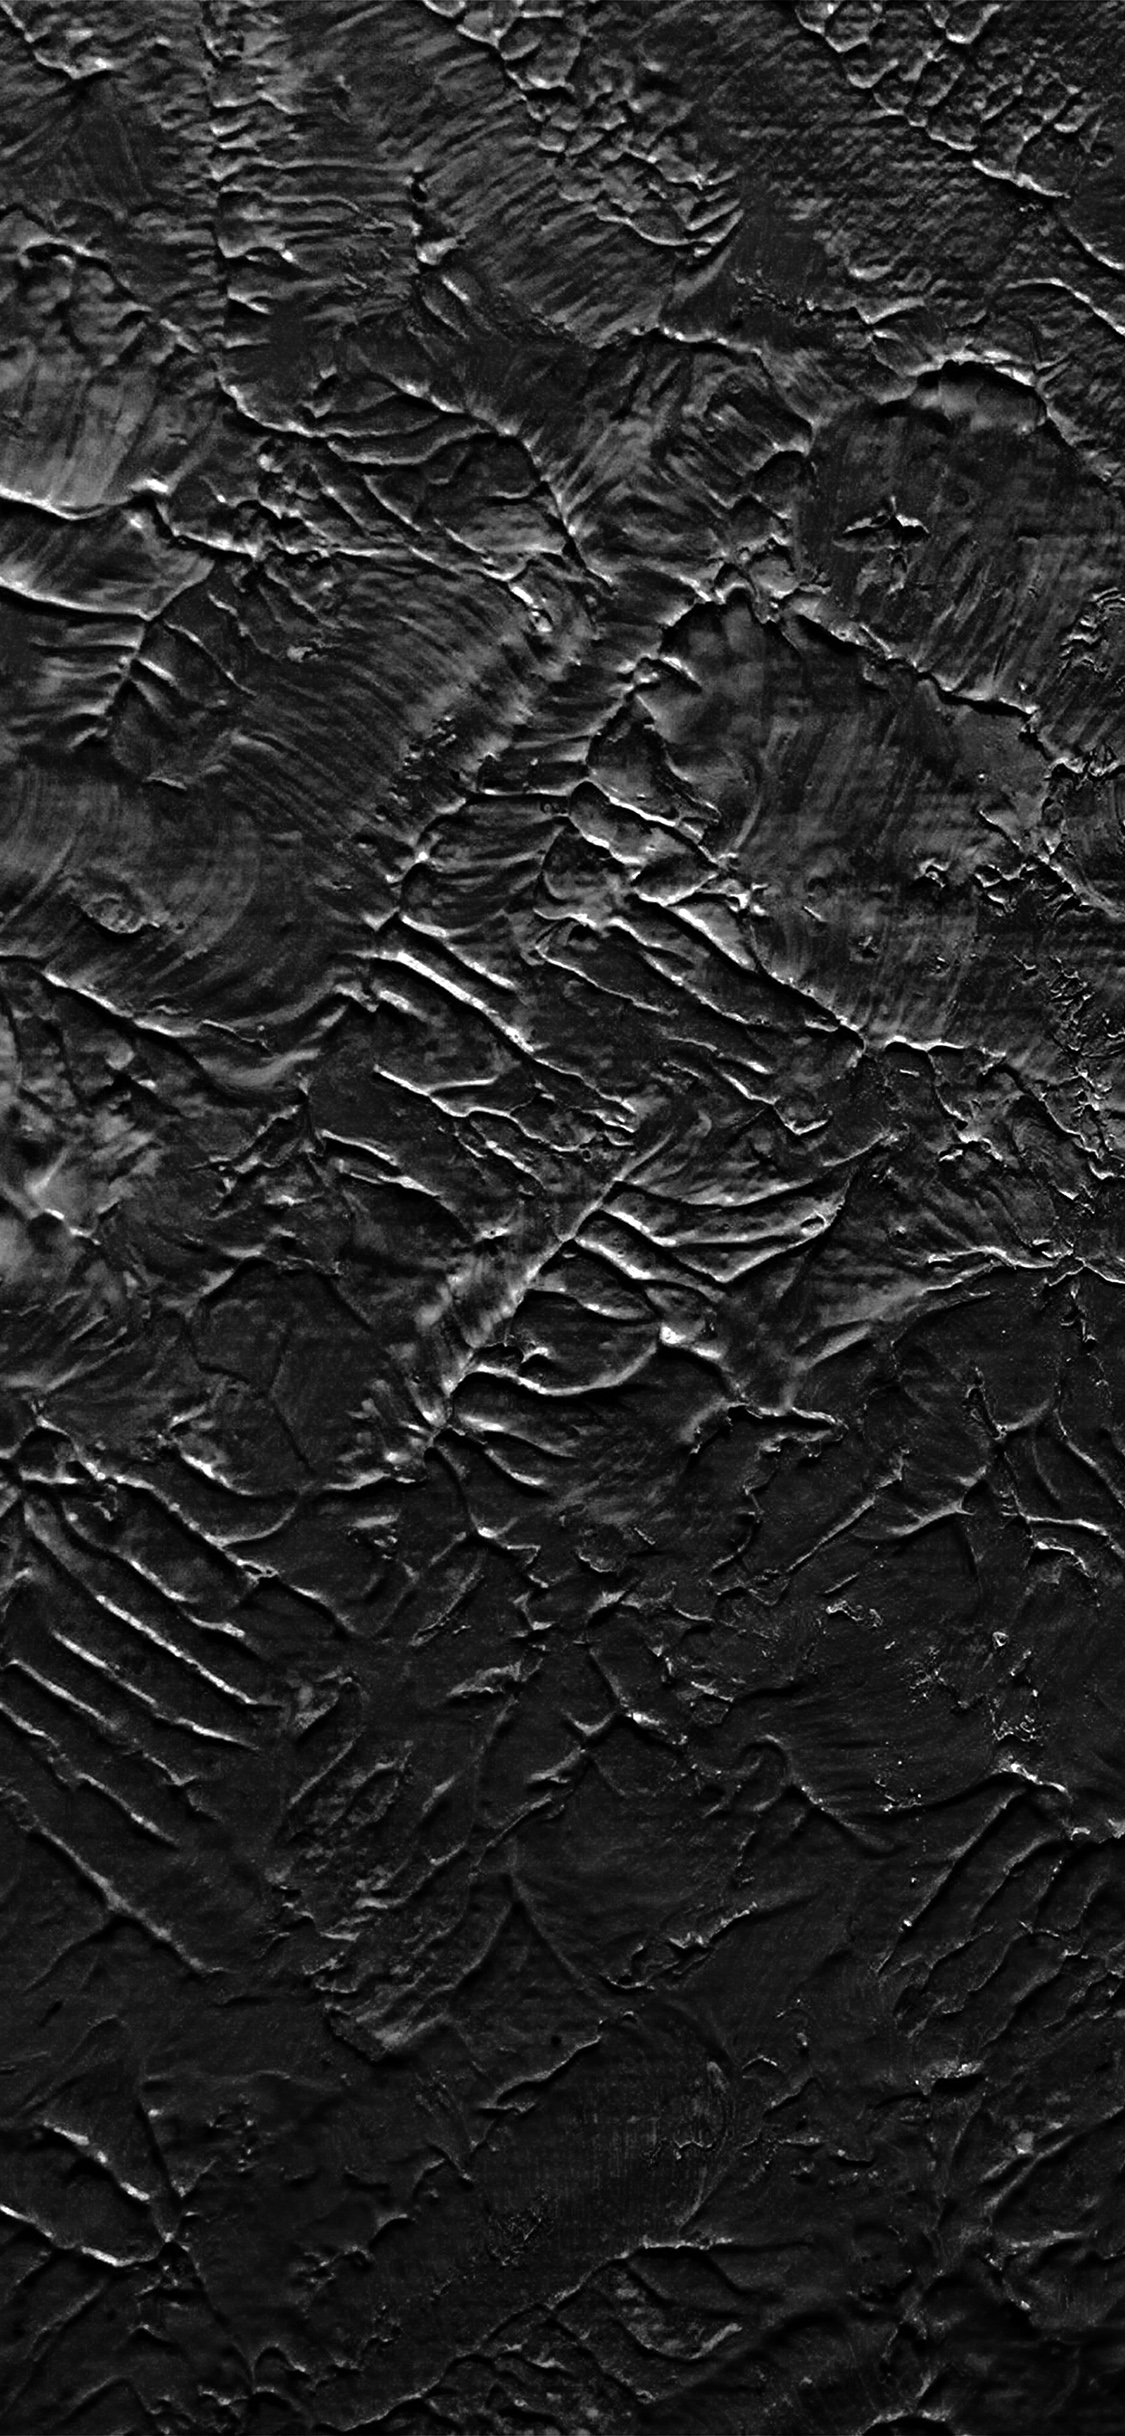 iPhonexpapers.com-Apple-iPhone-wallpaper-vr39-rubber-ipad-pro-bw-dark-texture-pattern